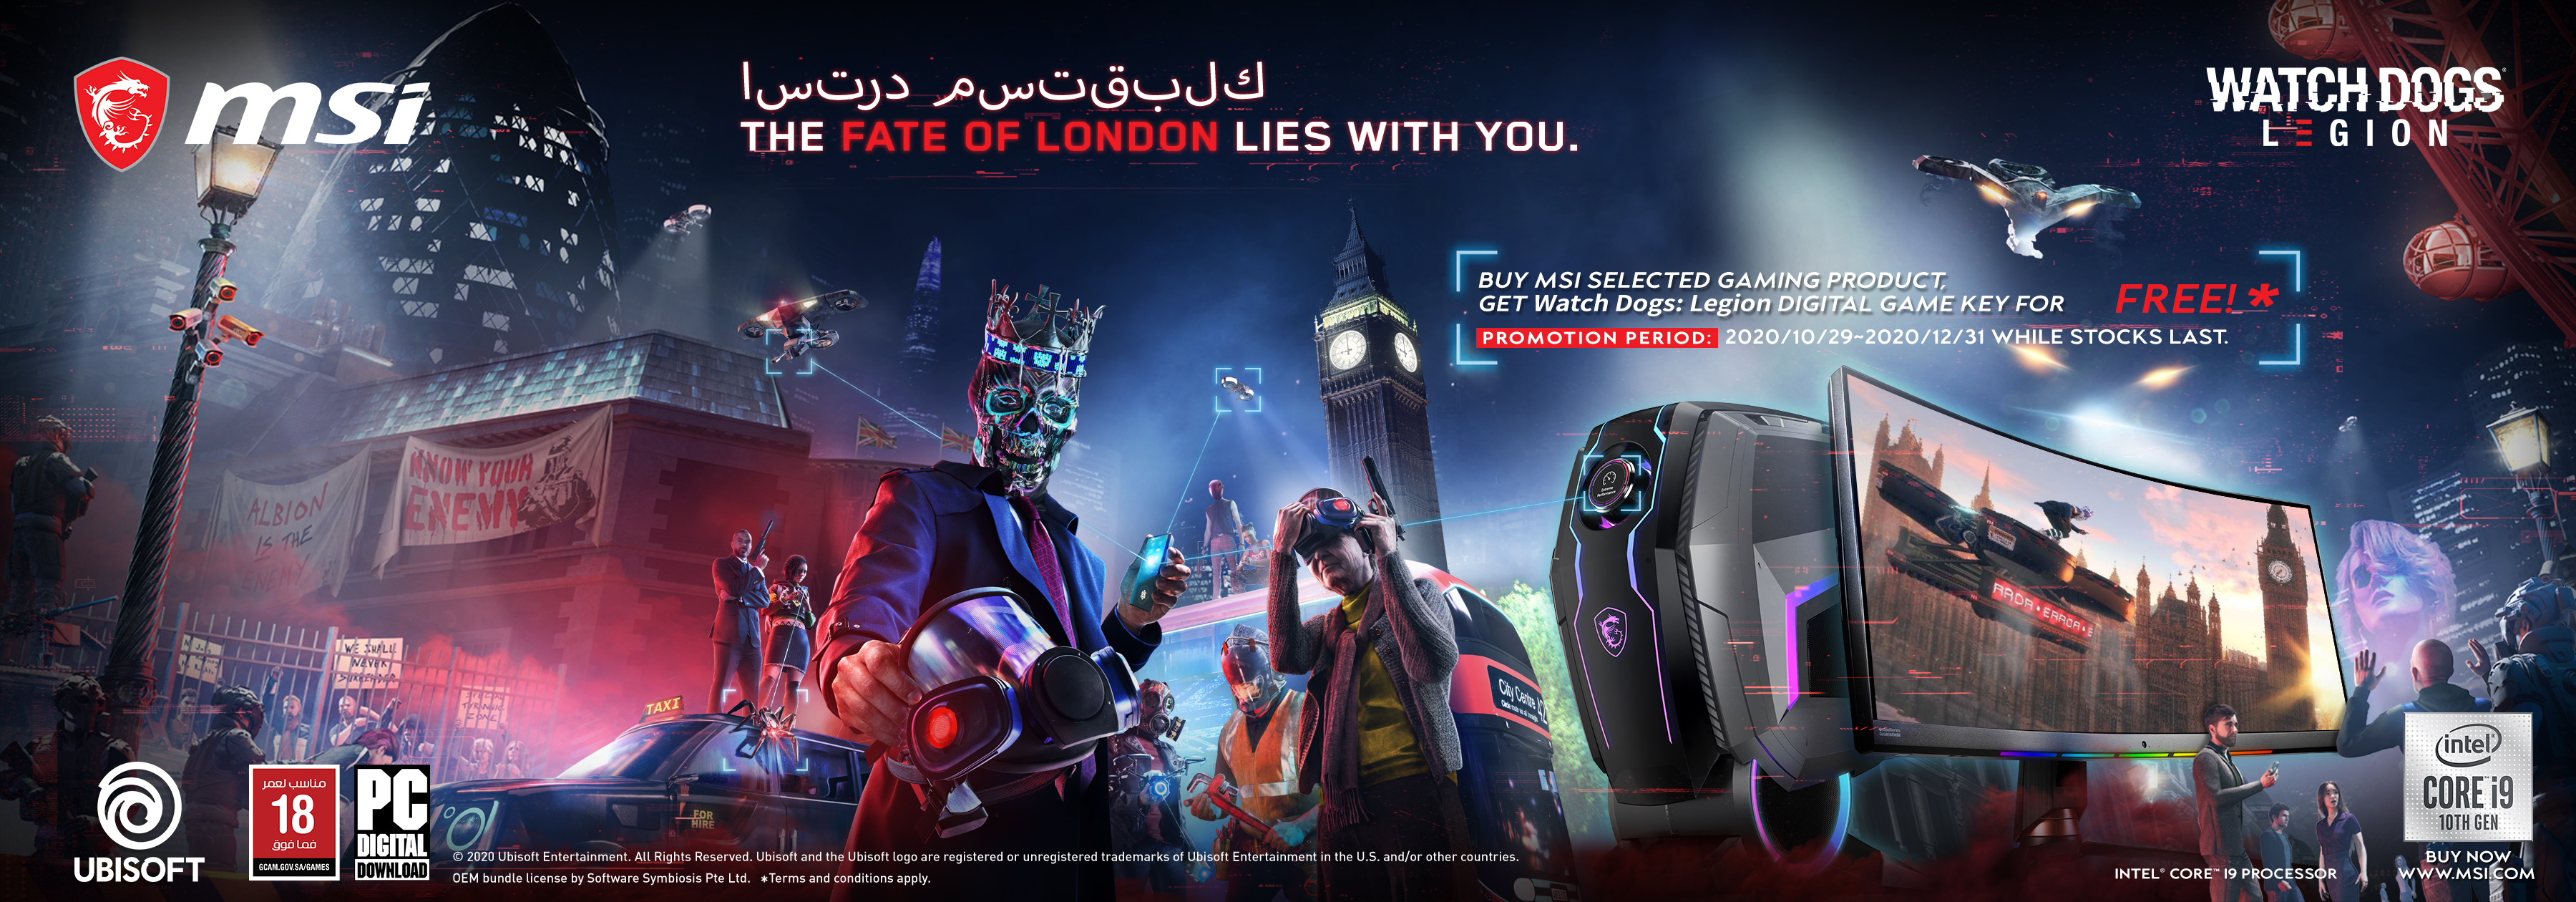 Watch Dogs Legion game bundle